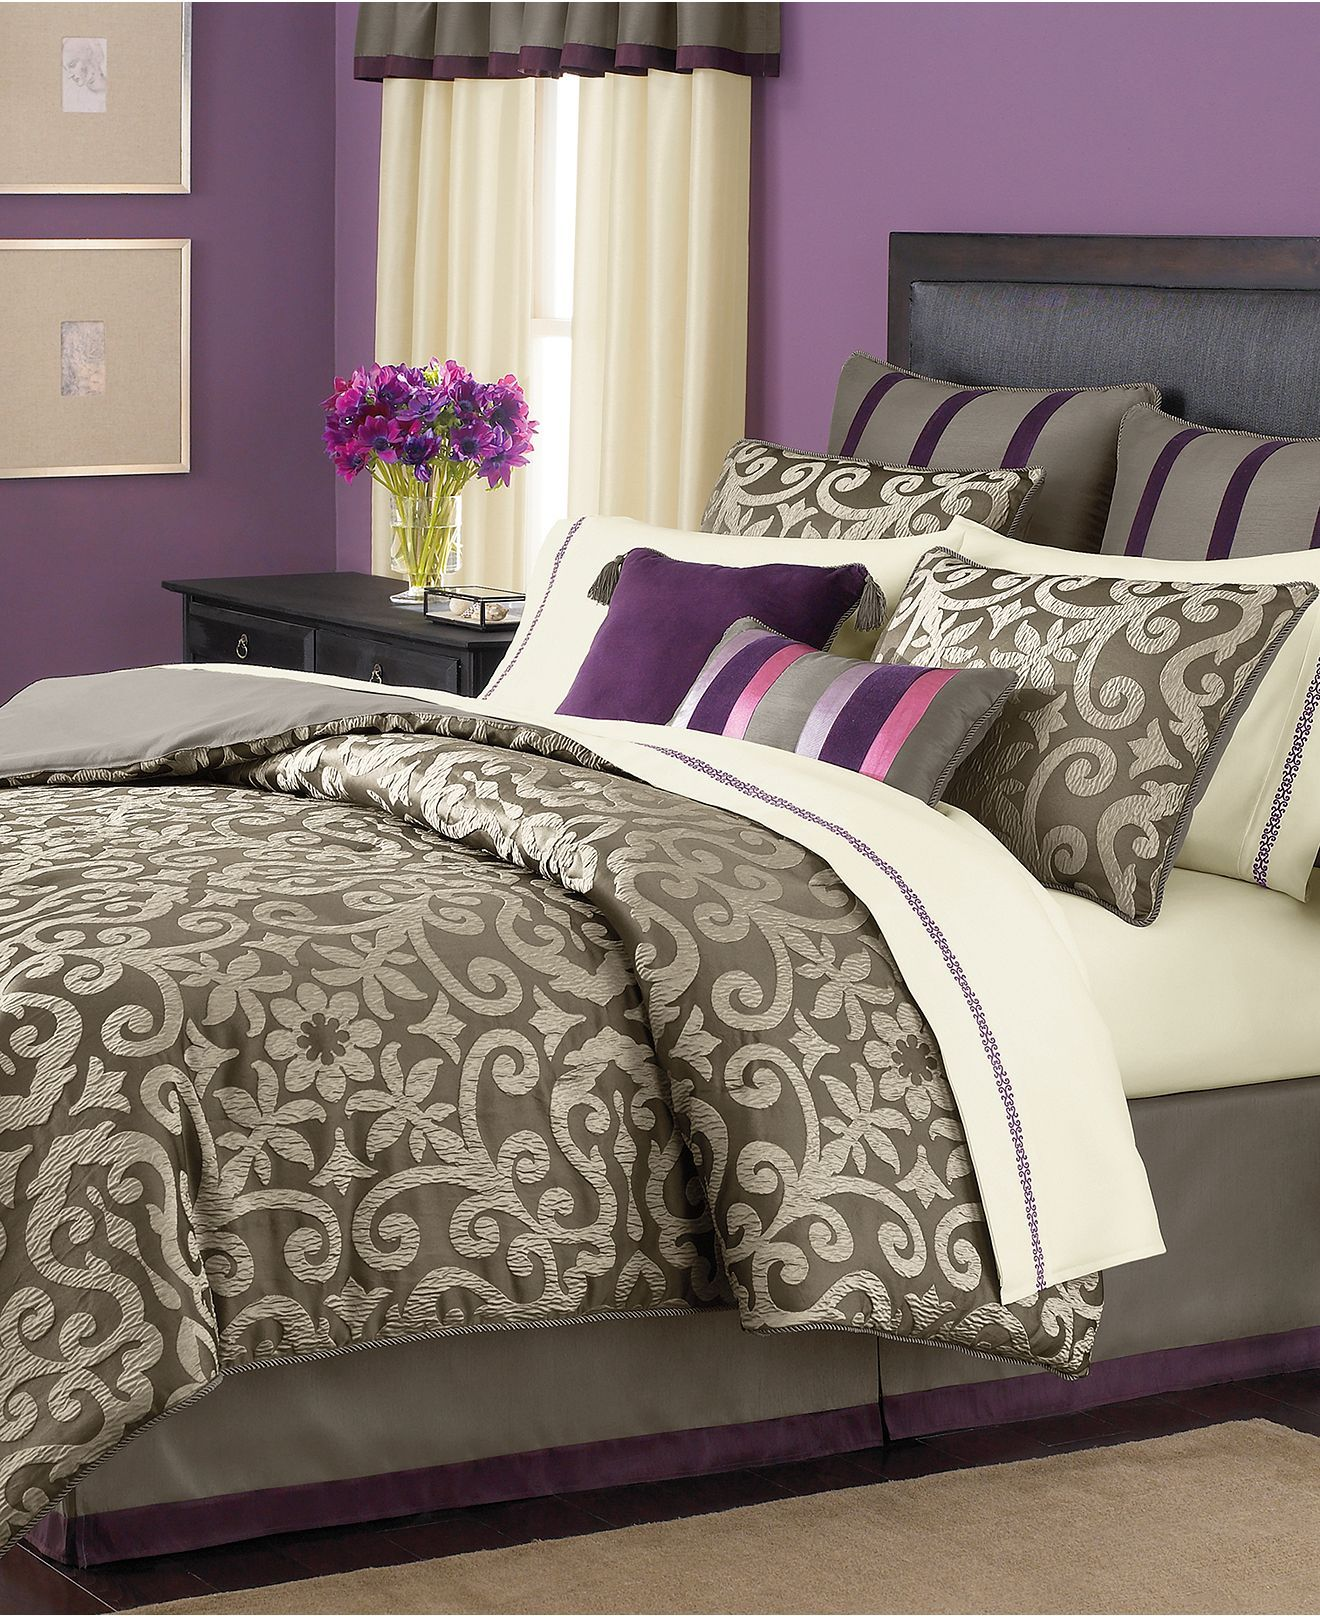 martha stewart collection bedding brownstone damask 24 15971 | 7cb0634b0d77c8a5b99caa2ad263be69